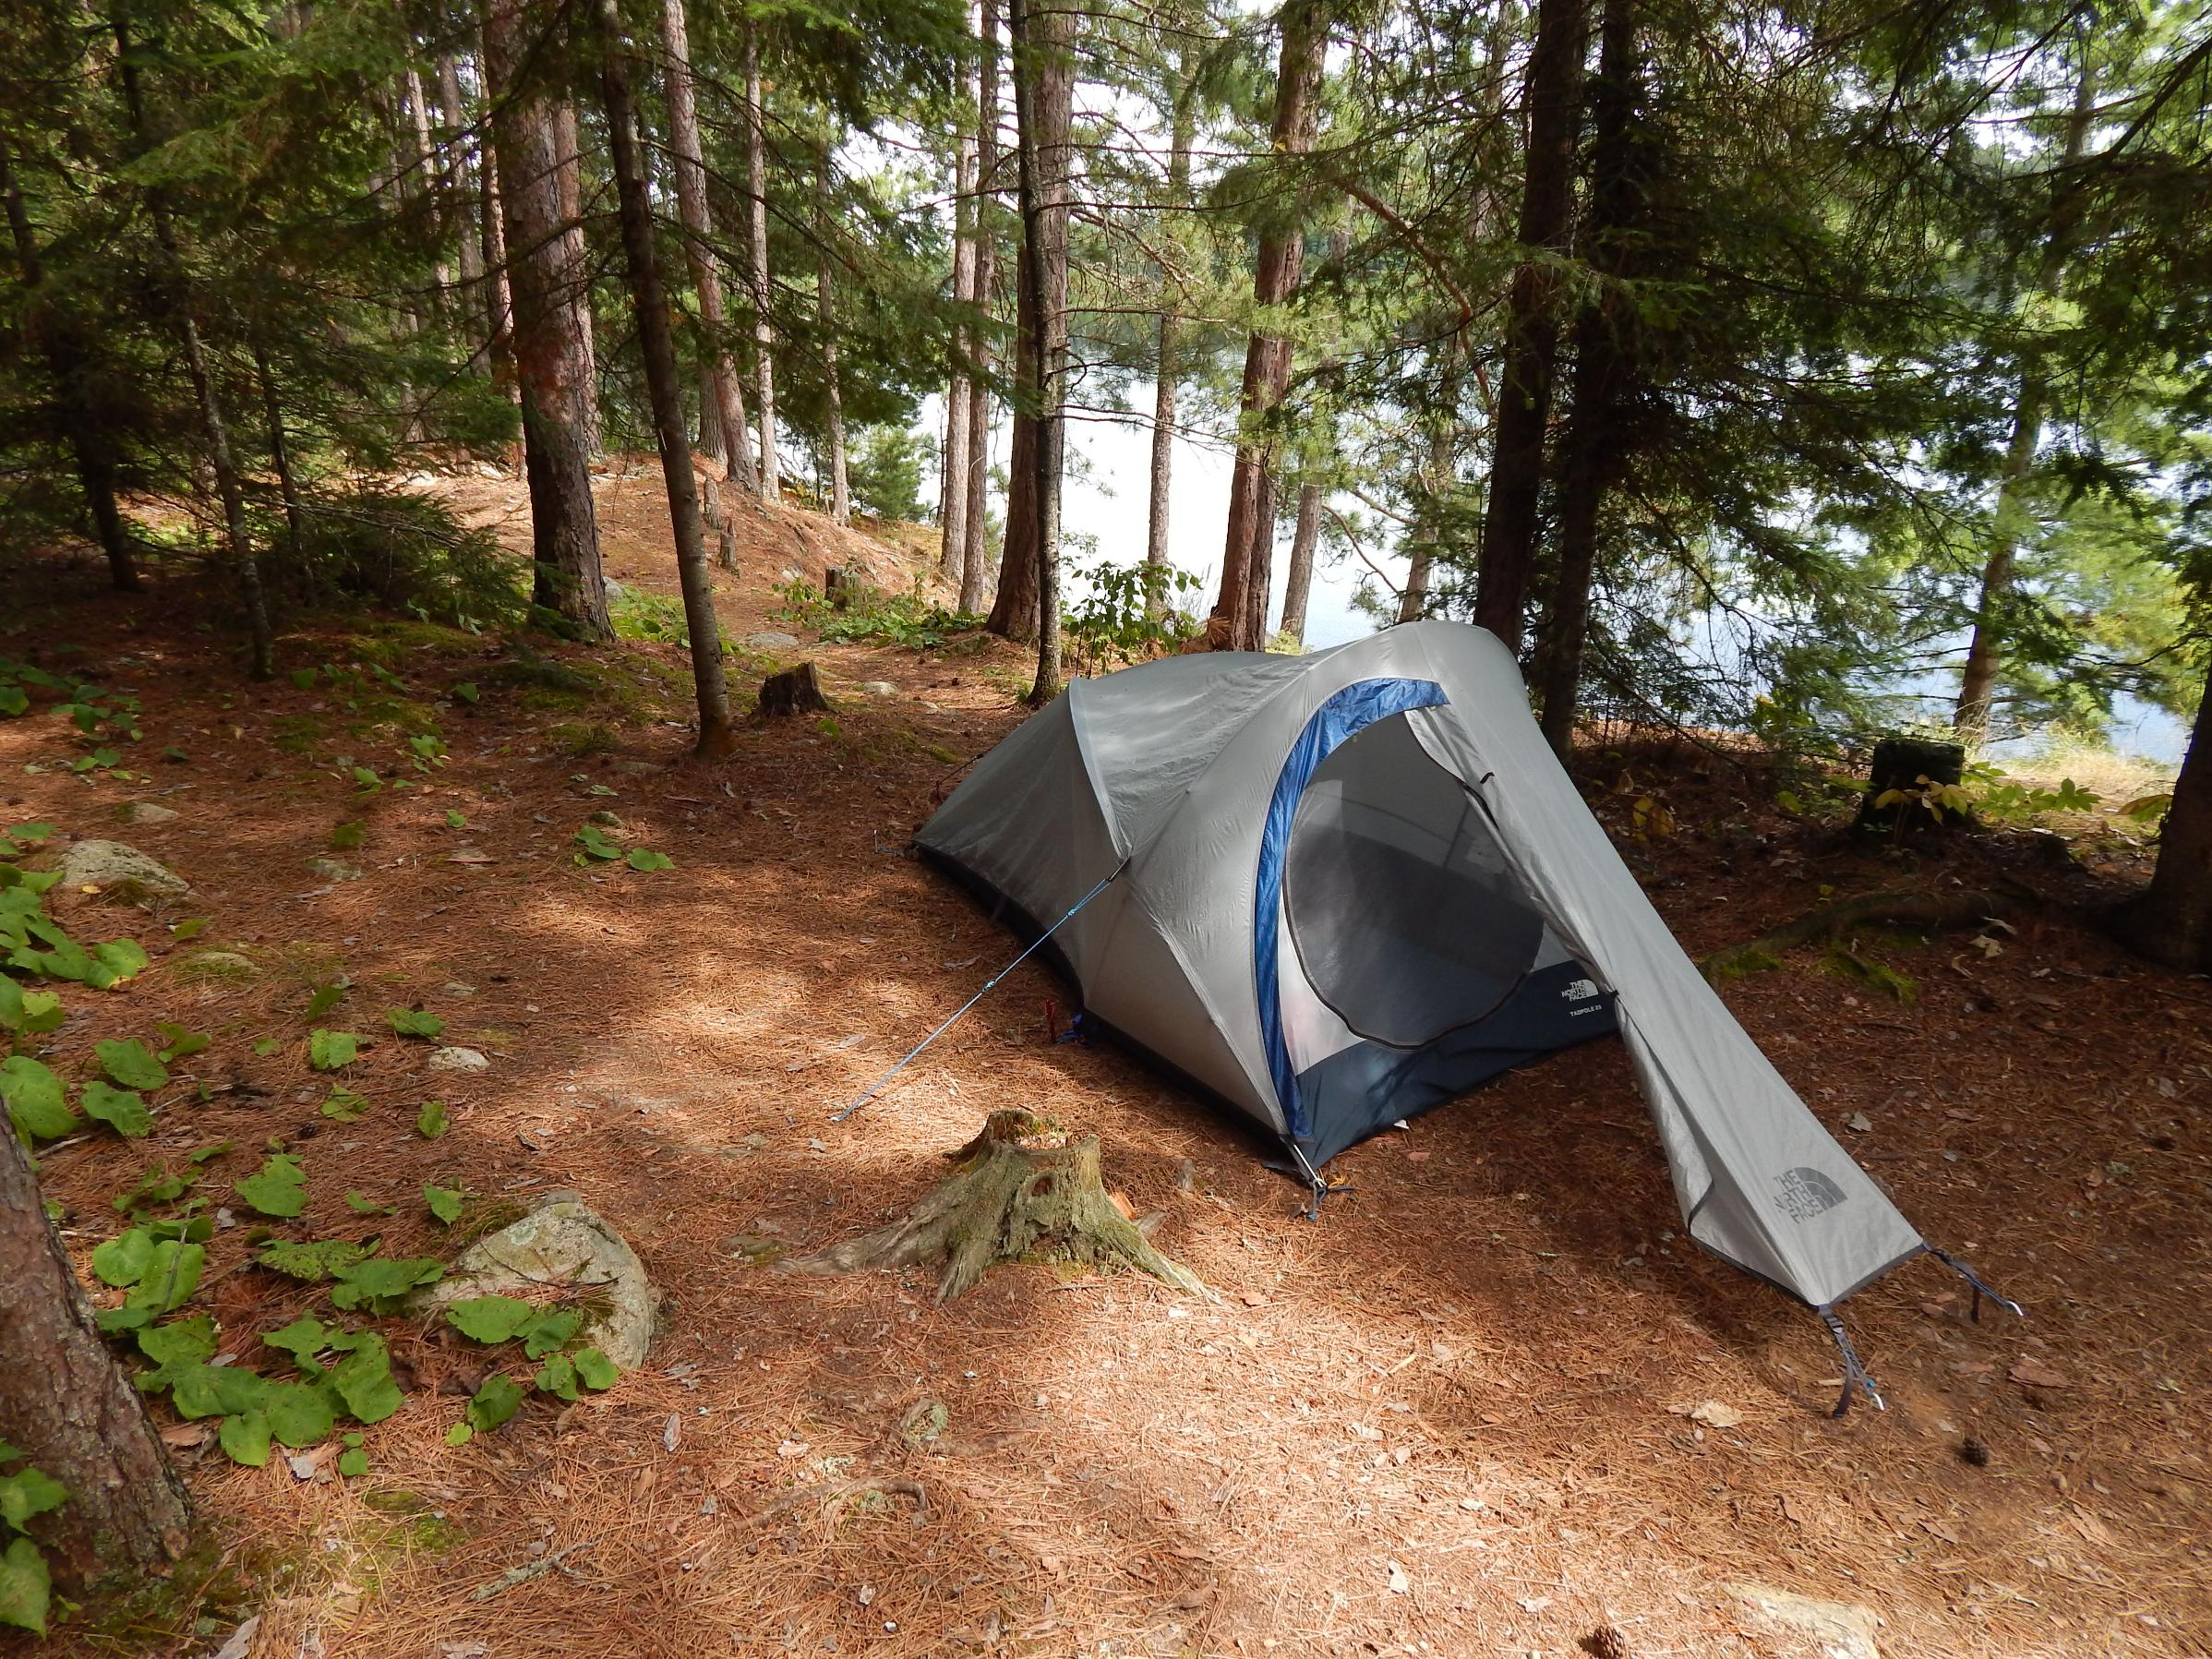 BWCA Solo tent vs. 2 man tent ... what would you take? Boundary Waters Private Group Forum Solo Tripping & BWCA Solo tent vs. 2 man tent ... what would you take? Boundary ...